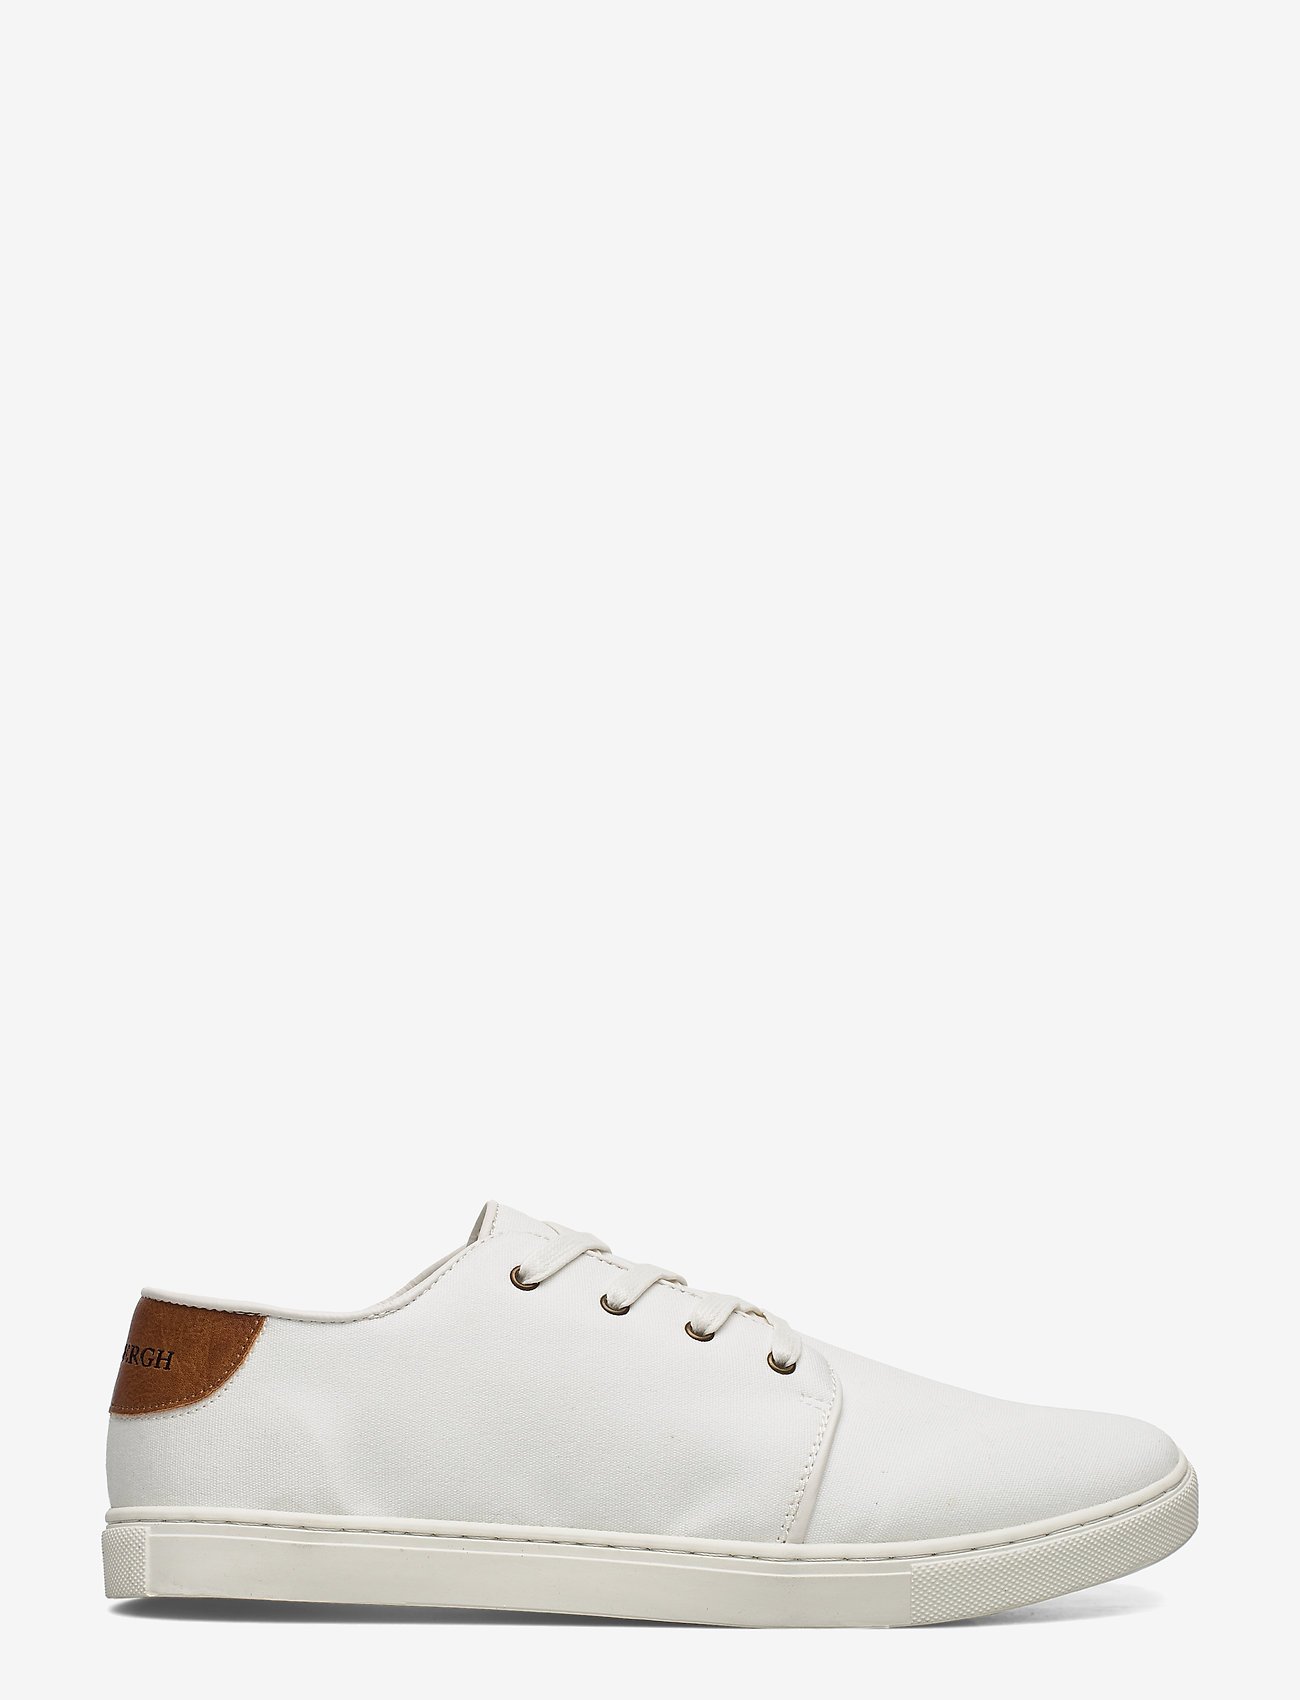 Lindbergh - Sneaker shoe - low tops - off white